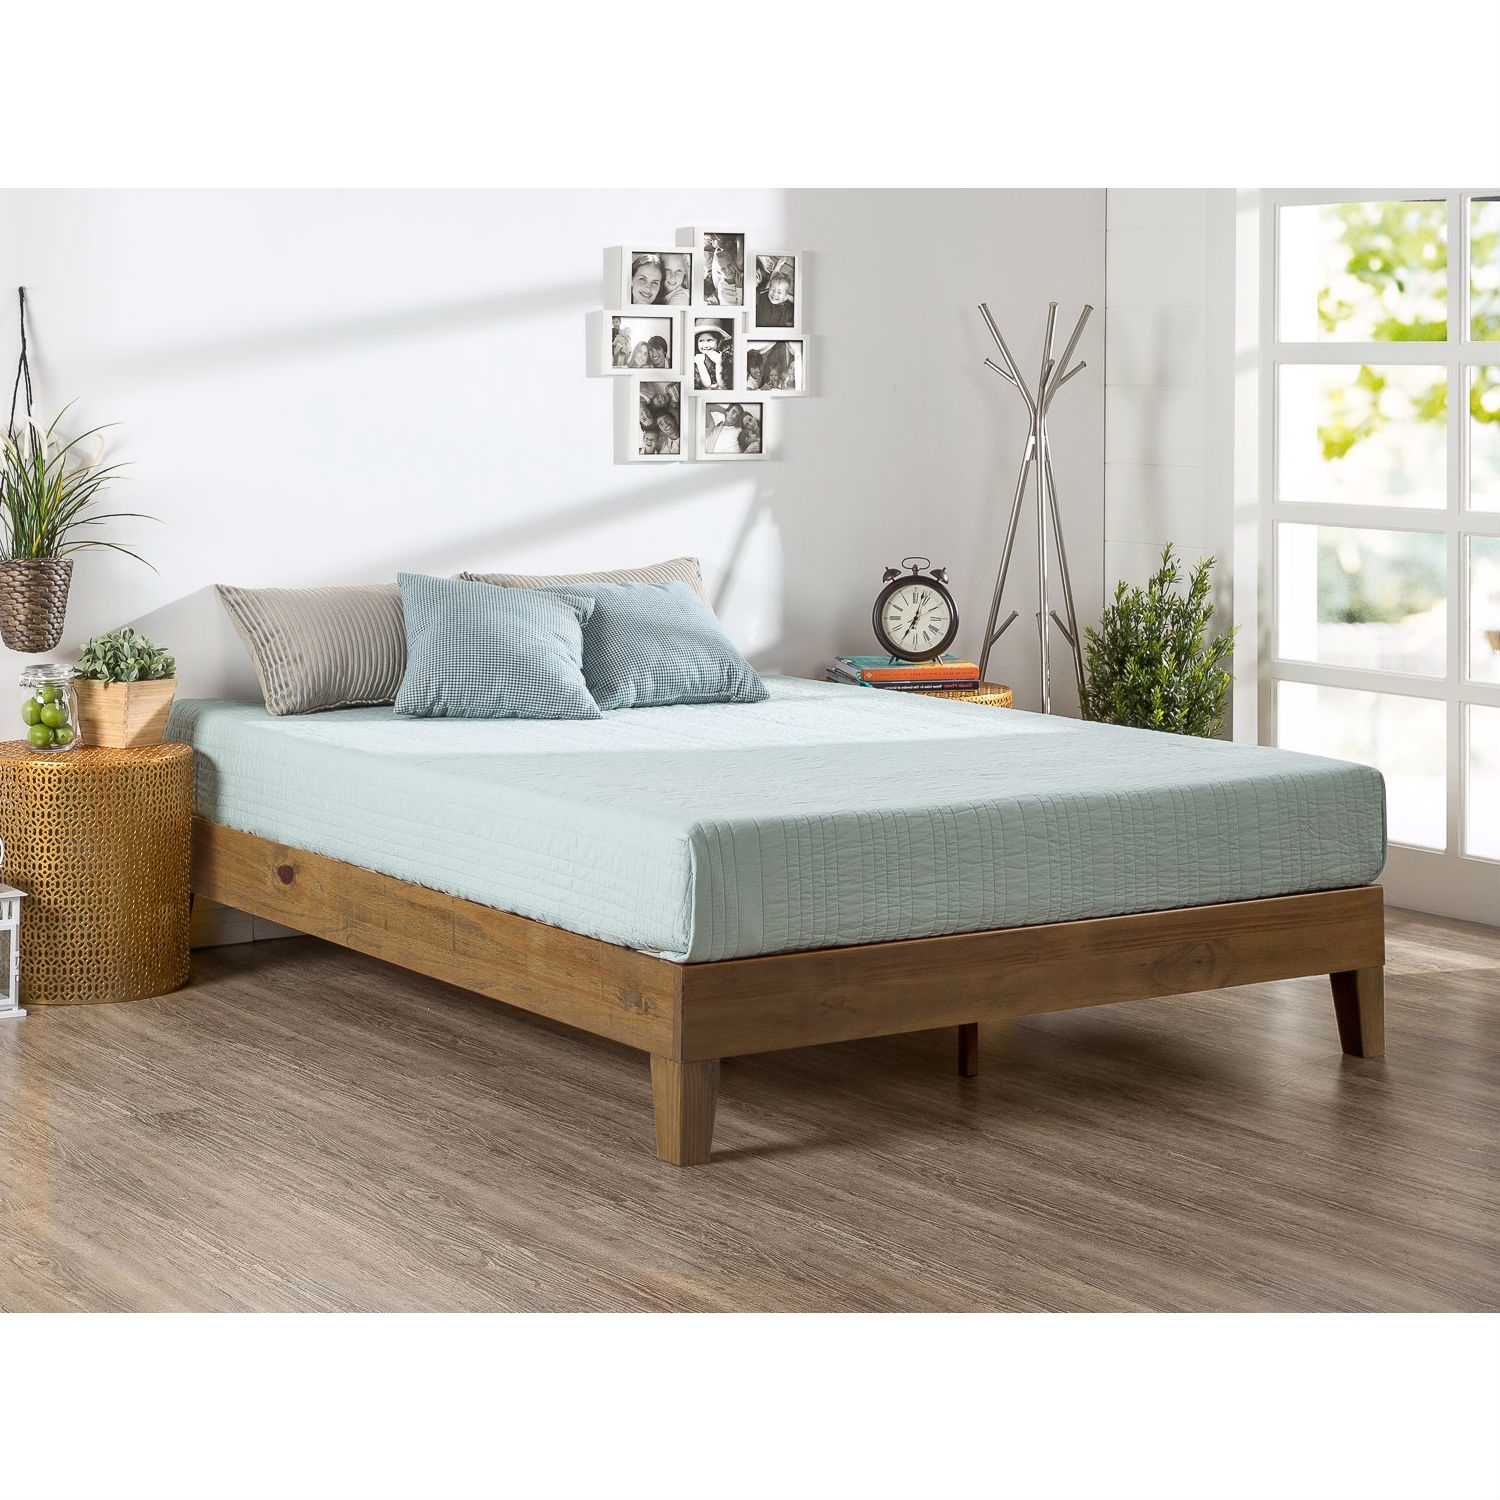 Queen size Solid Wood Modern Platform Bed Frame in Rustic Pine